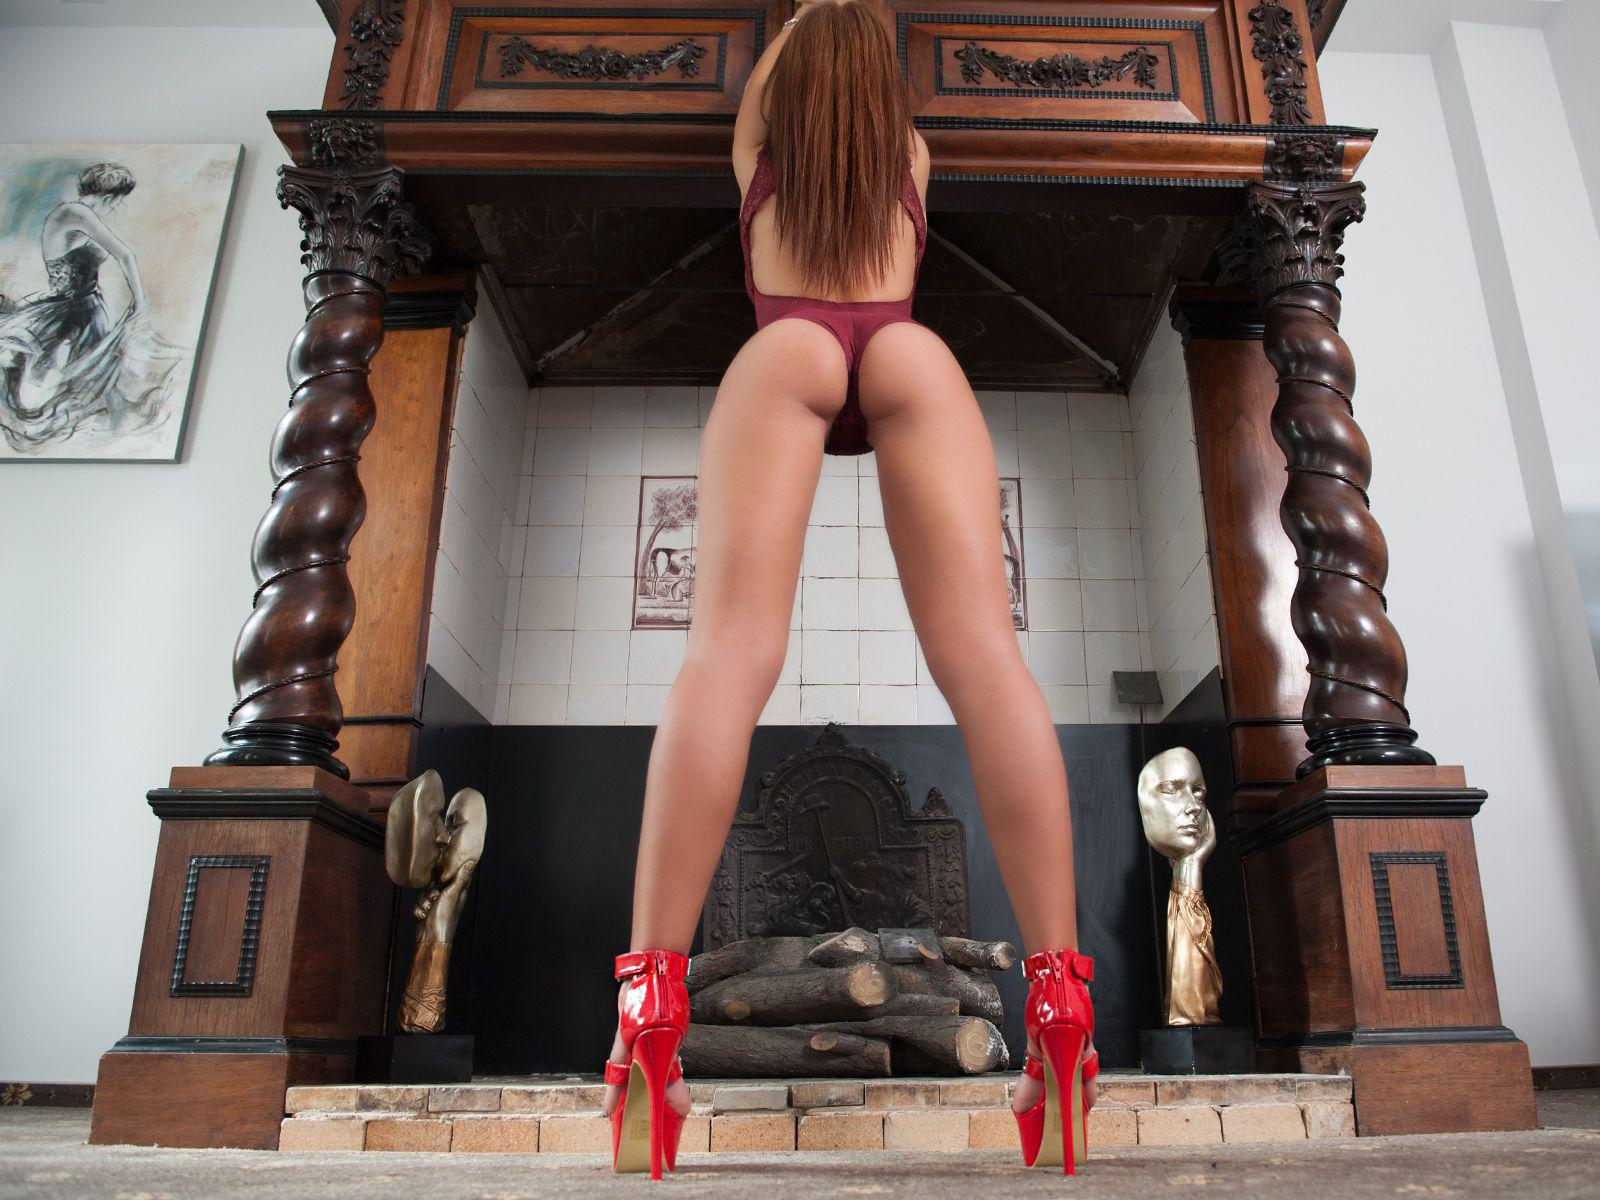 AllisonDesire in front of a fireplace